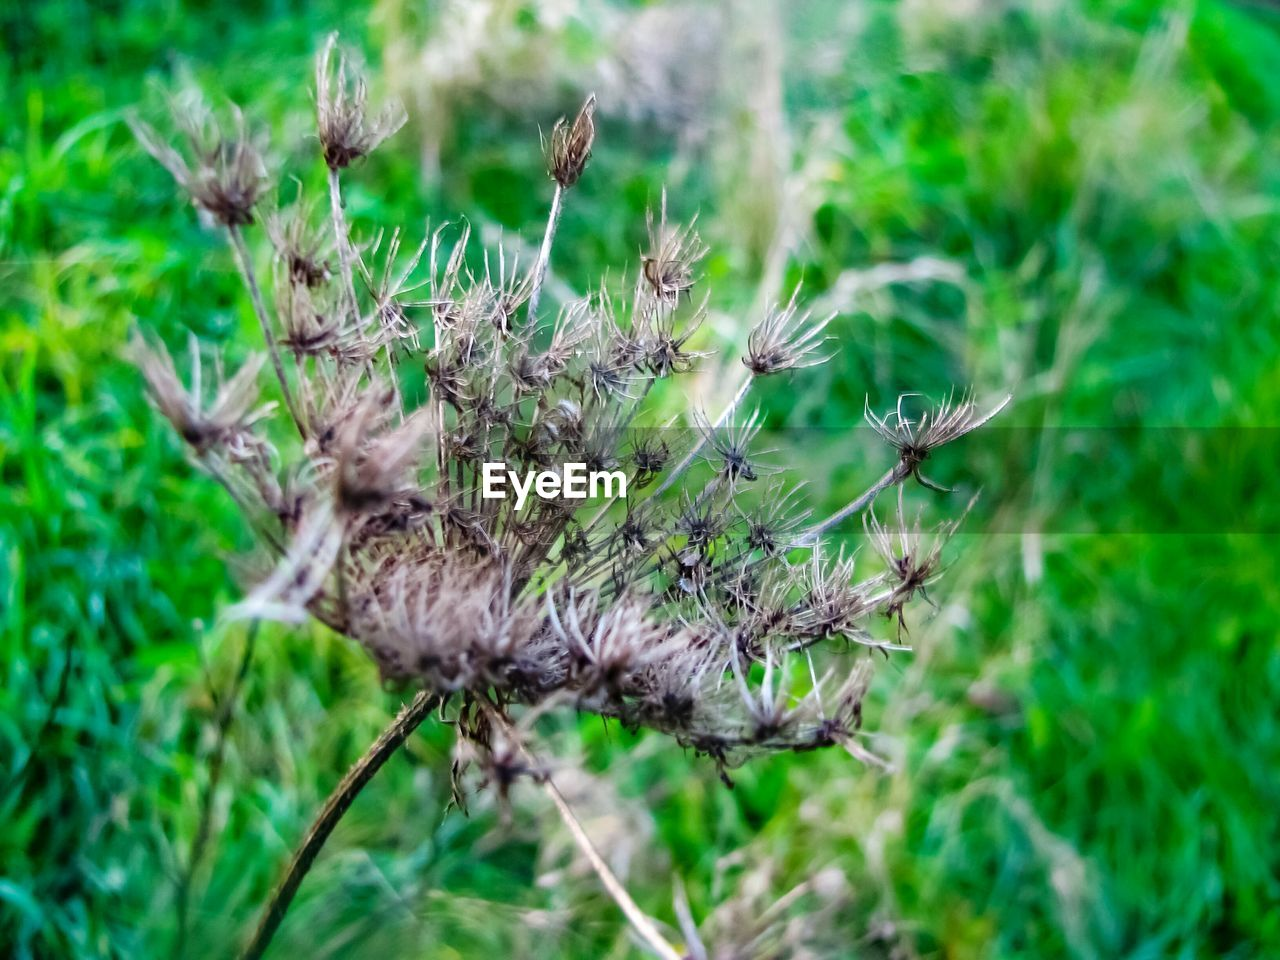 nature, plant, growth, green color, grass, outdoors, no people, day, flower, thistle, close-up